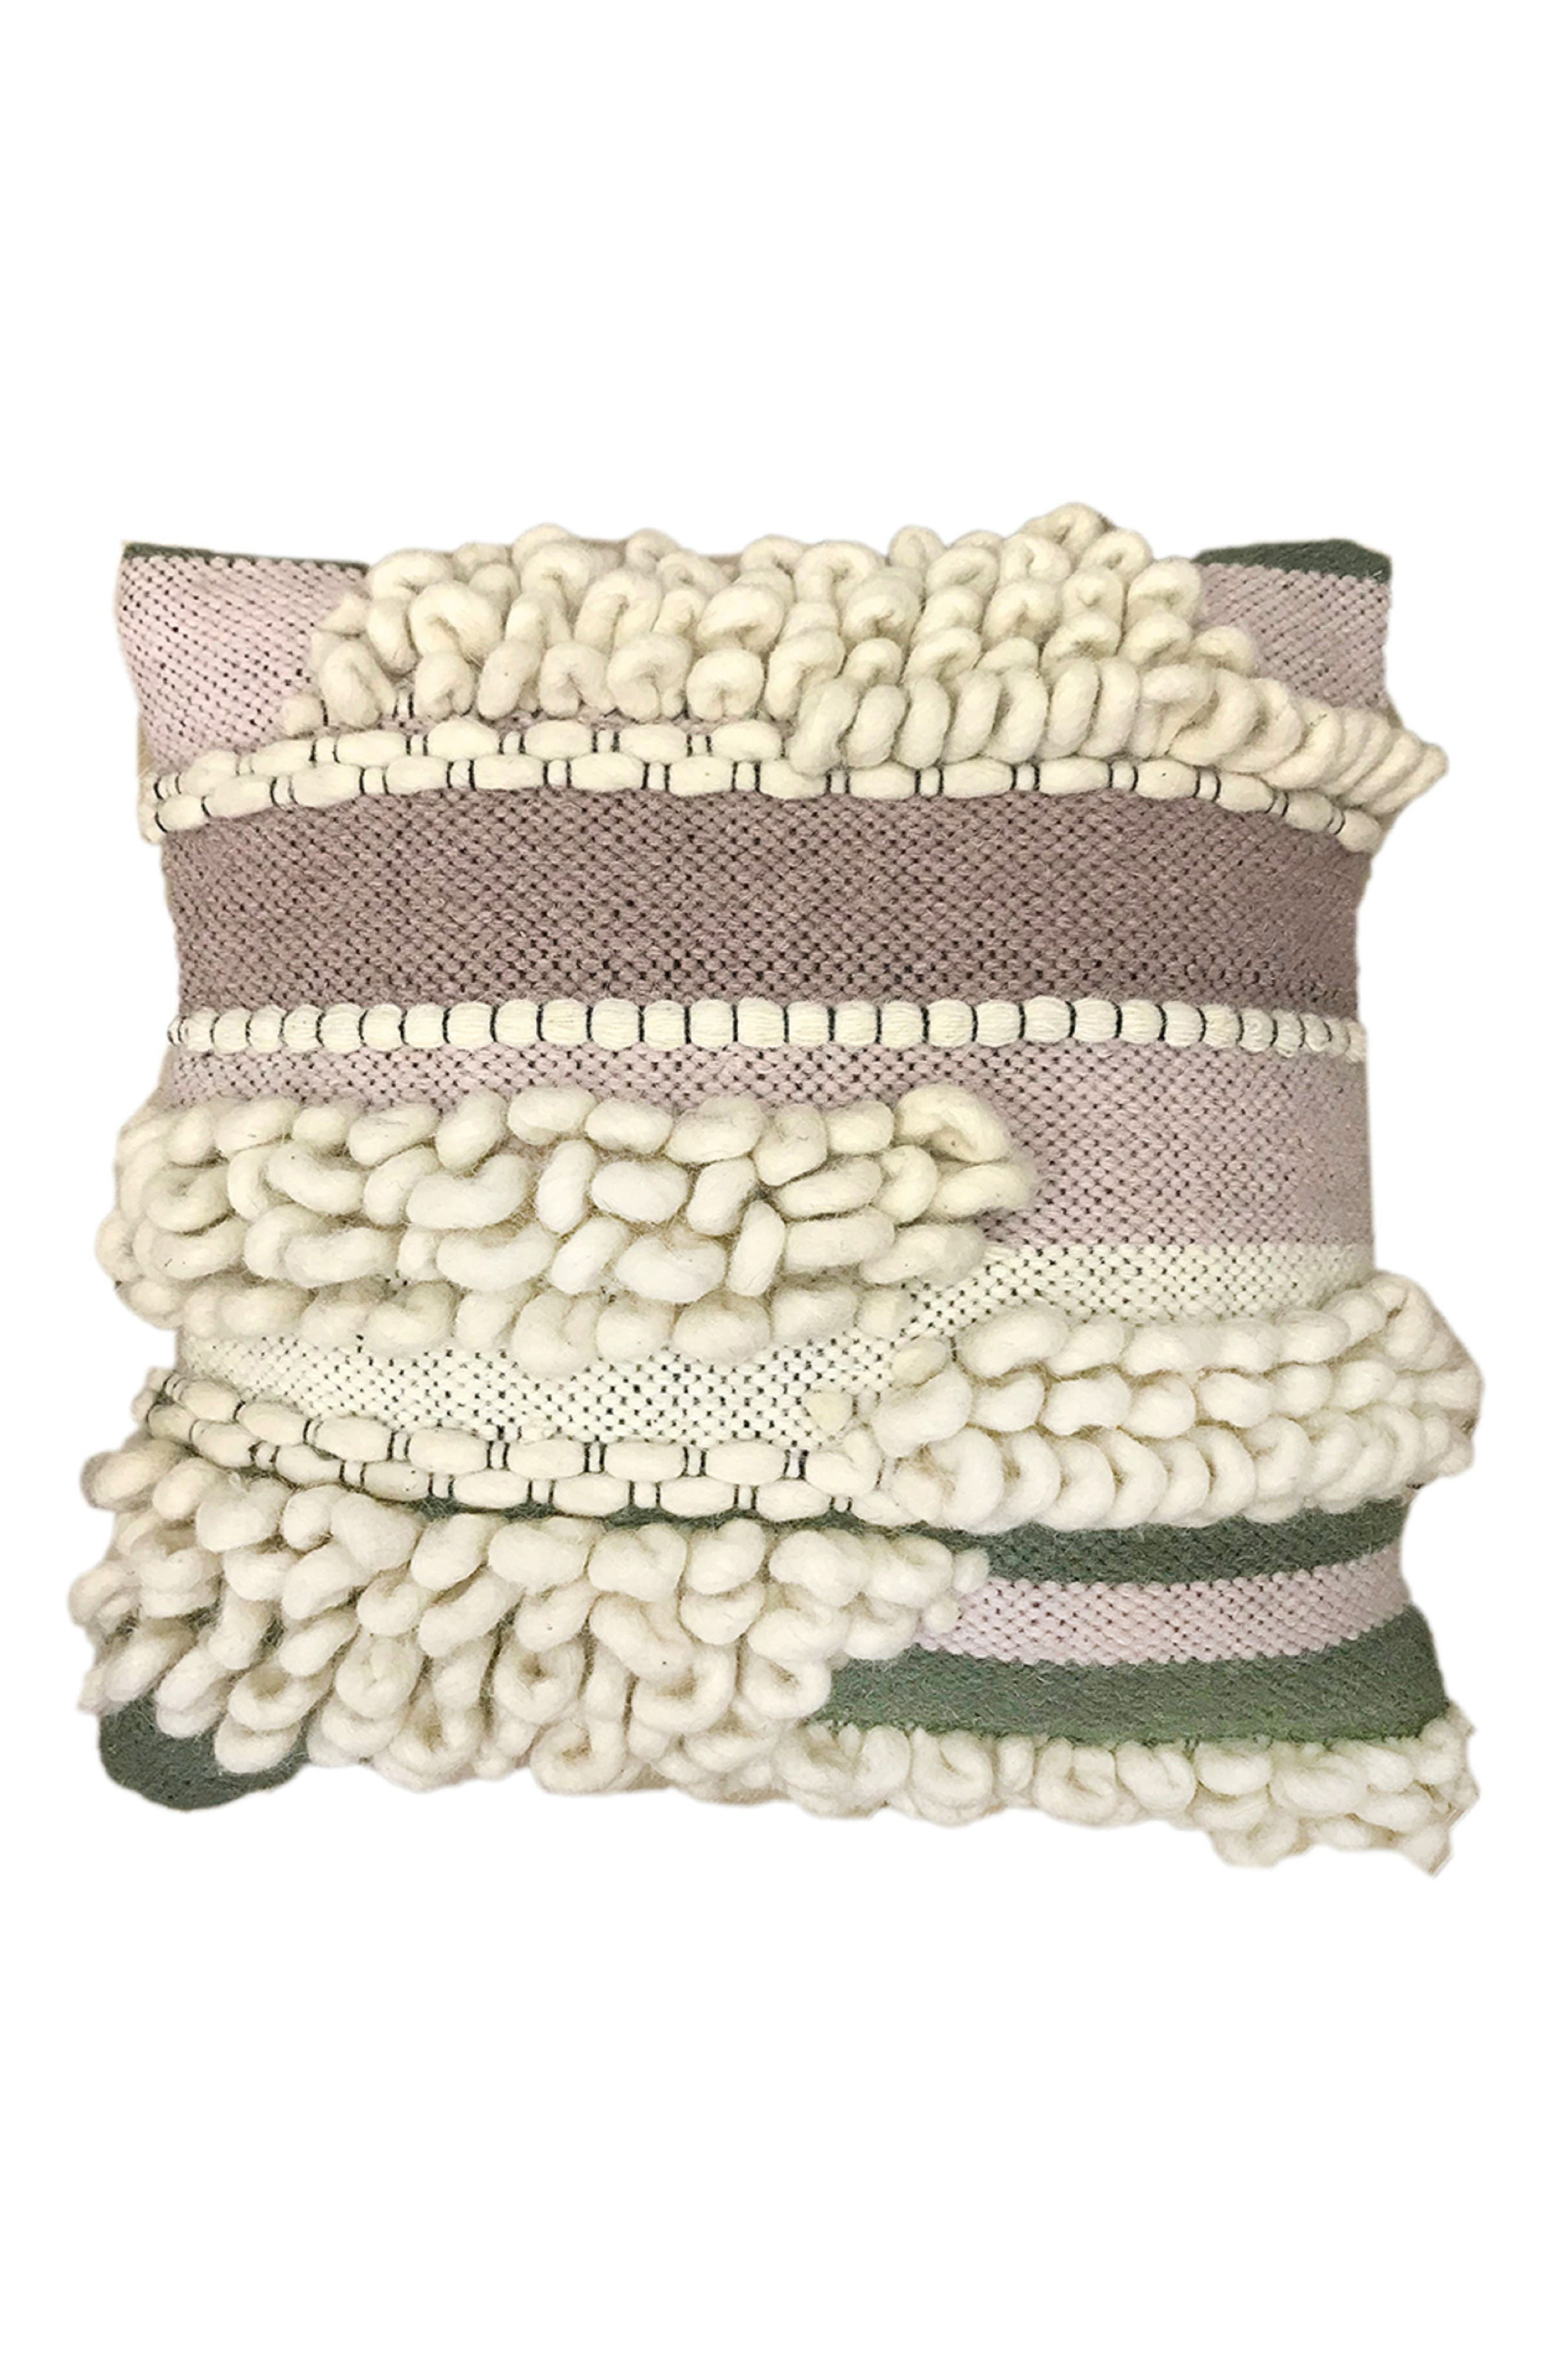 Safi Wool Accent Pillow,                             Main thumbnail 1, color,                             Ivory/ Berry/ Moss